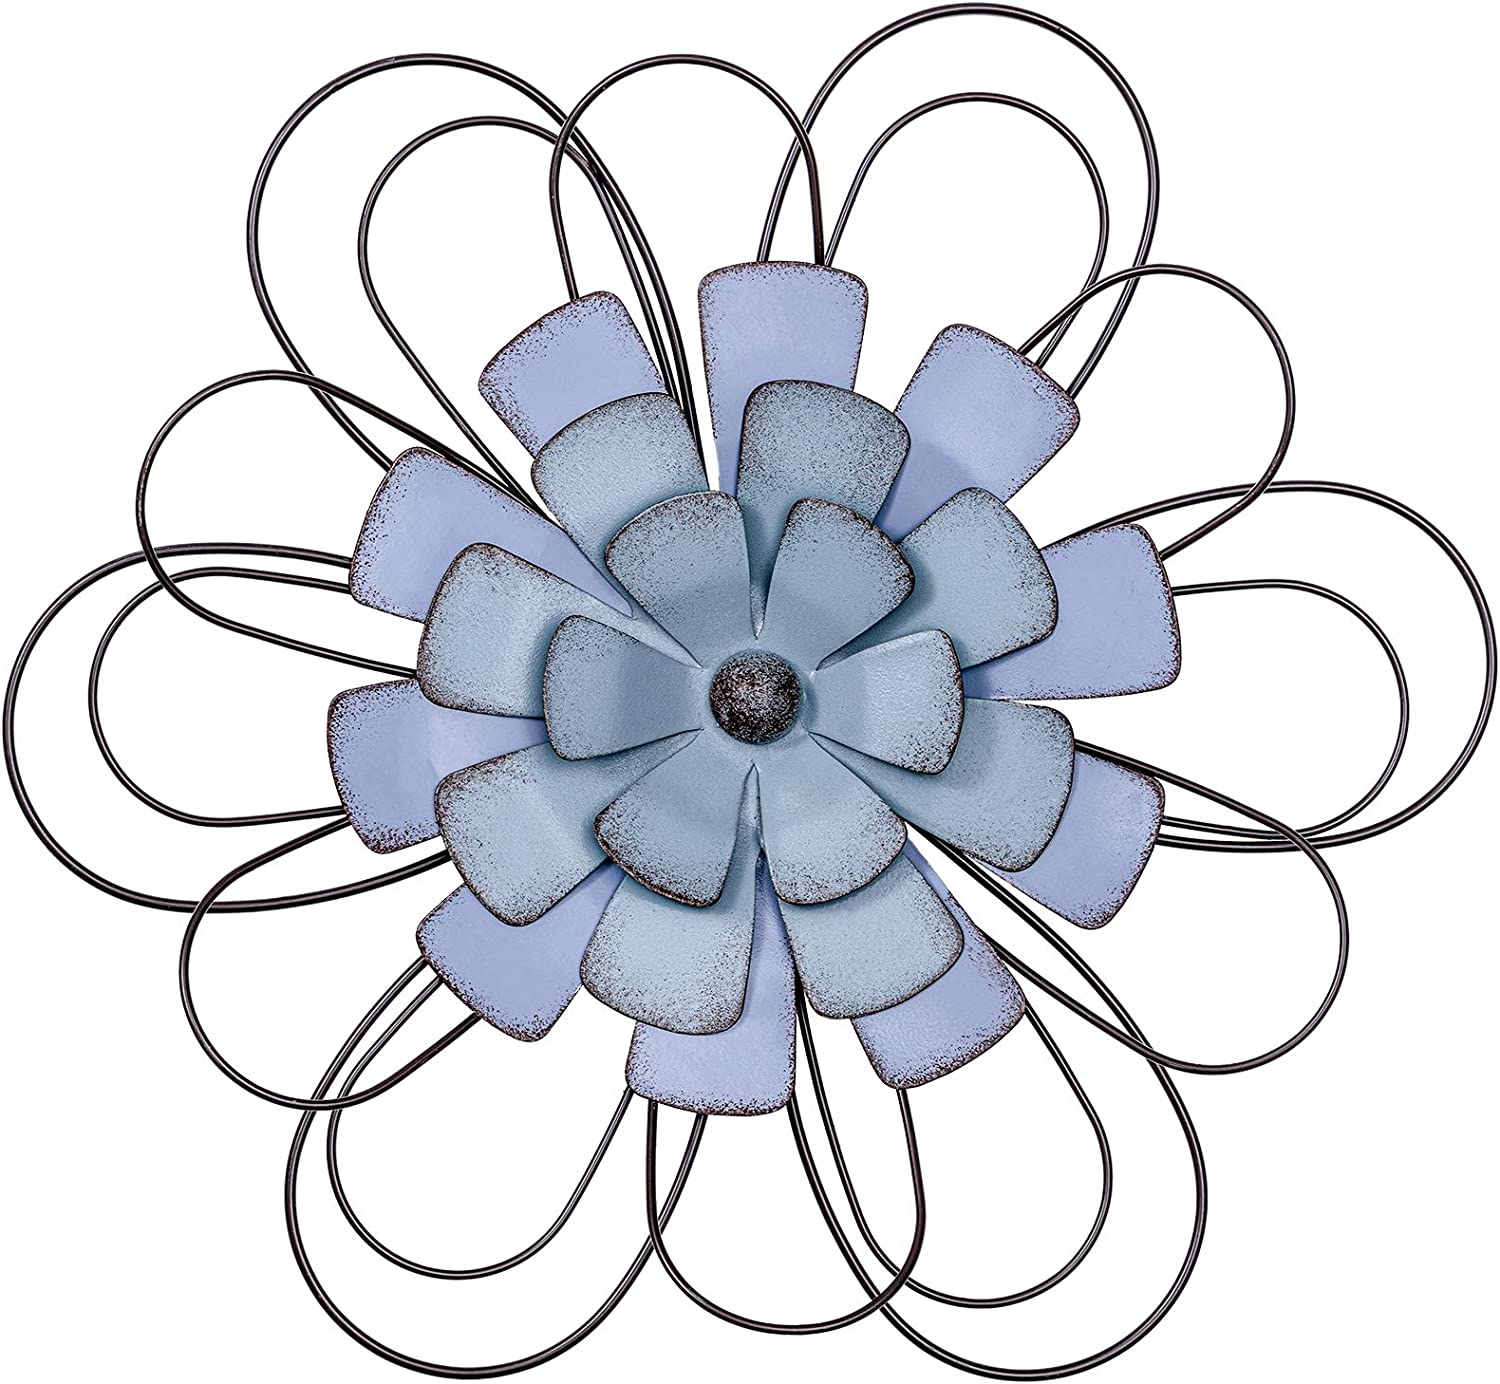 "hogardeck Metal Flower Wall Decor - 13"" Metal Floral Home Decoration for Bedroom, Living Room, Bathroom, Kitchen, Wall Sculptures Outdoor Wall Art"